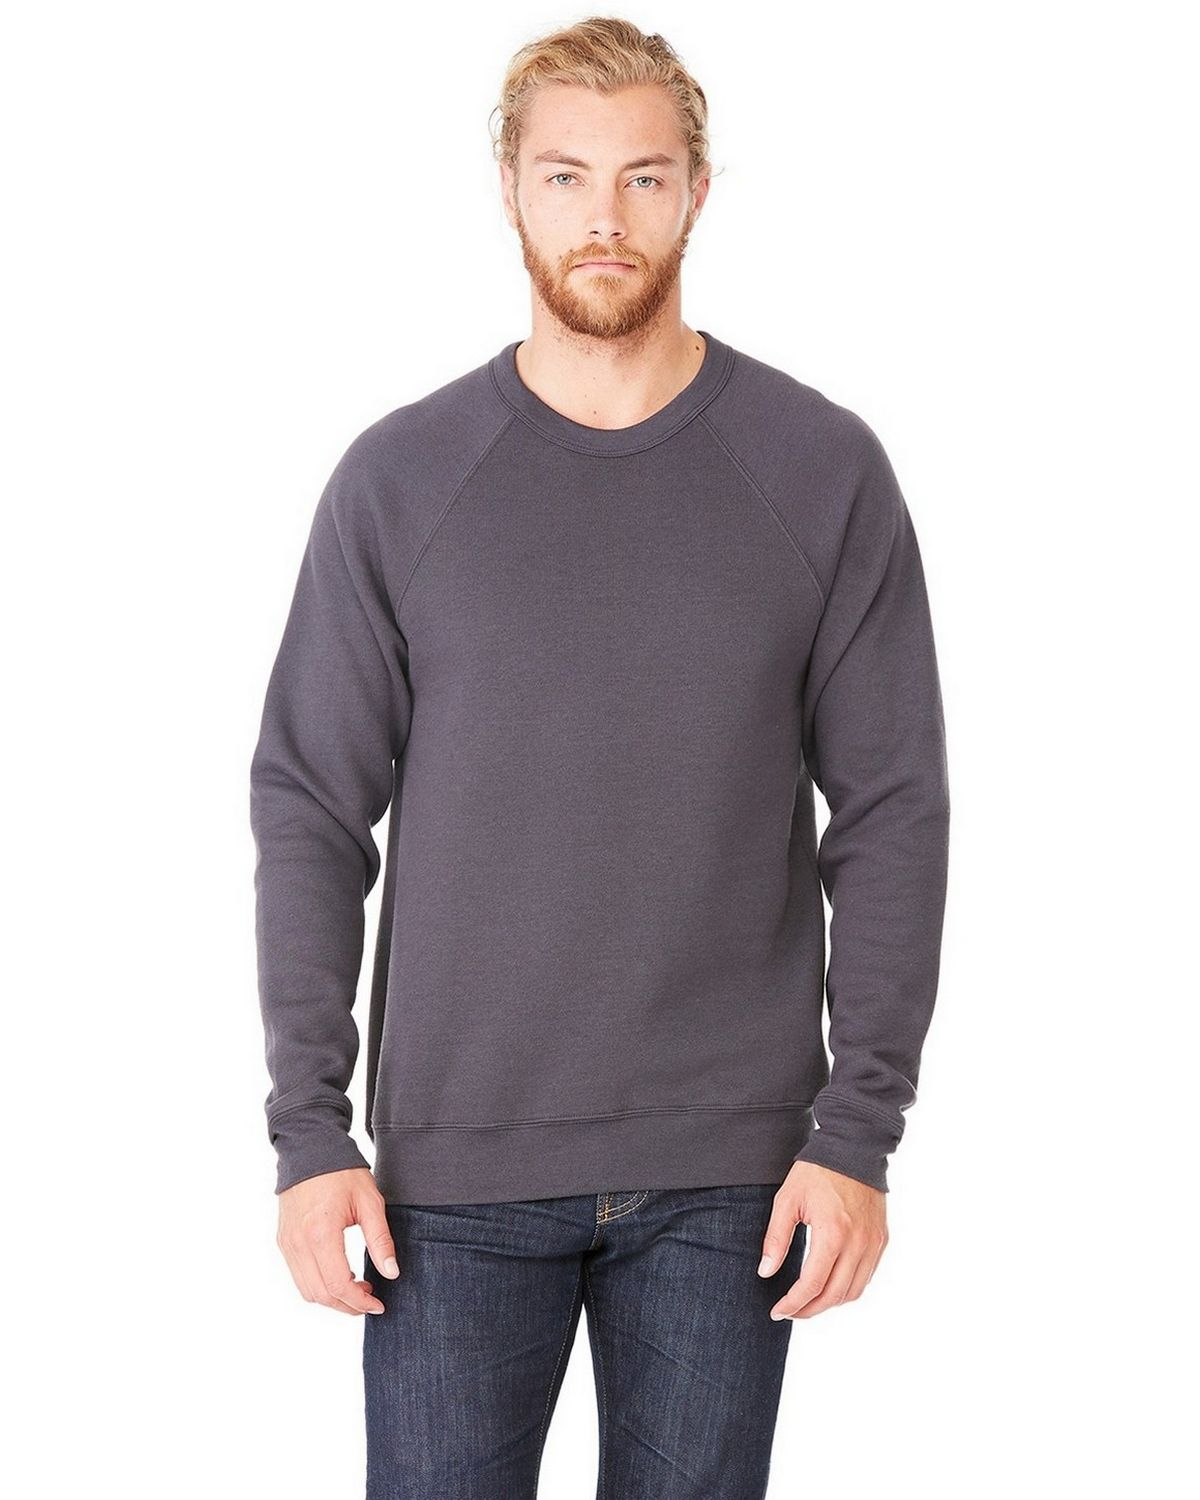 Bella + Canvas 3901 Sponge Fleece Crew Neck Unisex Sweatshirt - Dark Grey - XS from Bella + Canvas